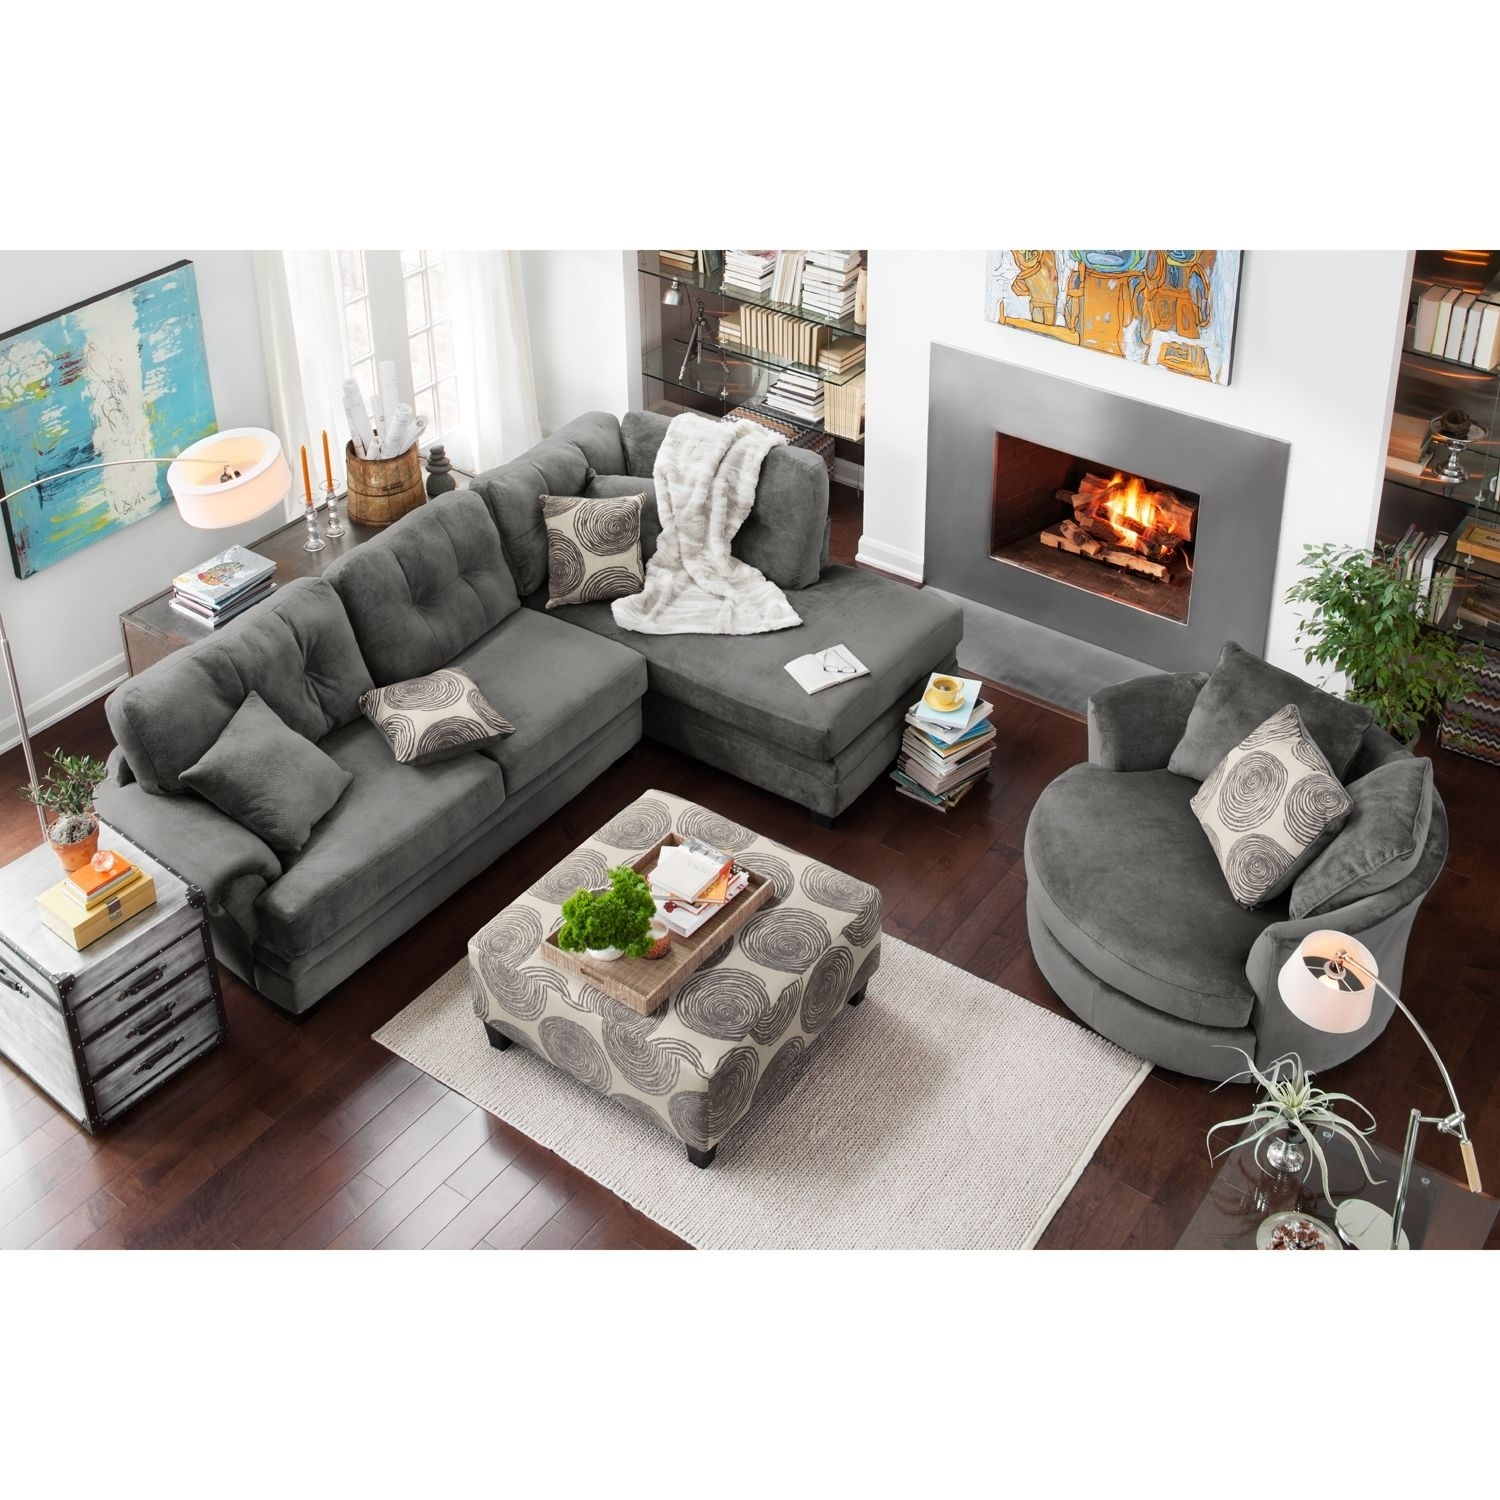 Cordelle 2 Piece Right Facing Chaise Sectional – Gray | City Regarding Value City Sectional Sofas (View 8 of 10)